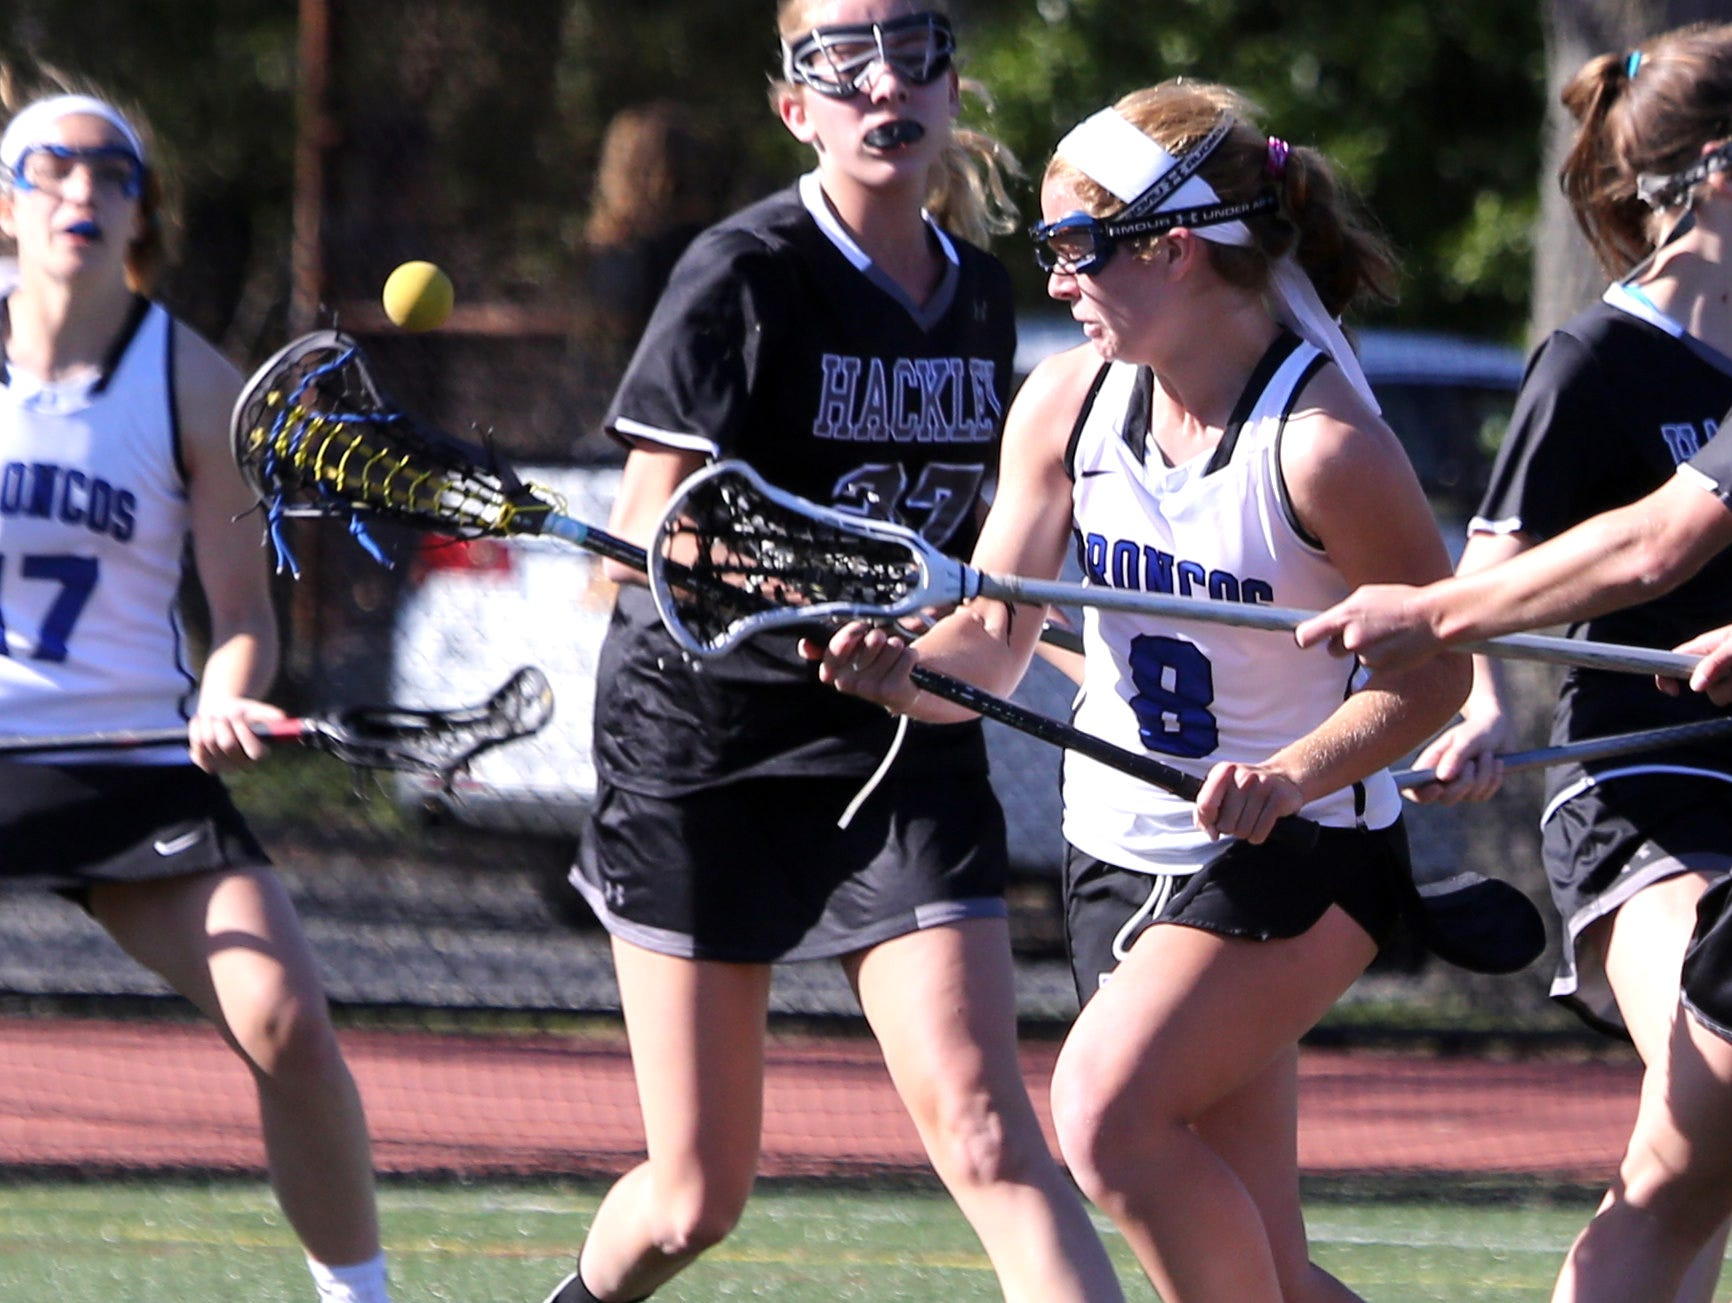 Bronxville defeated Hackley 15-11 in a varsity girls lacrosse game at Bronxville High School April 20, 2016.